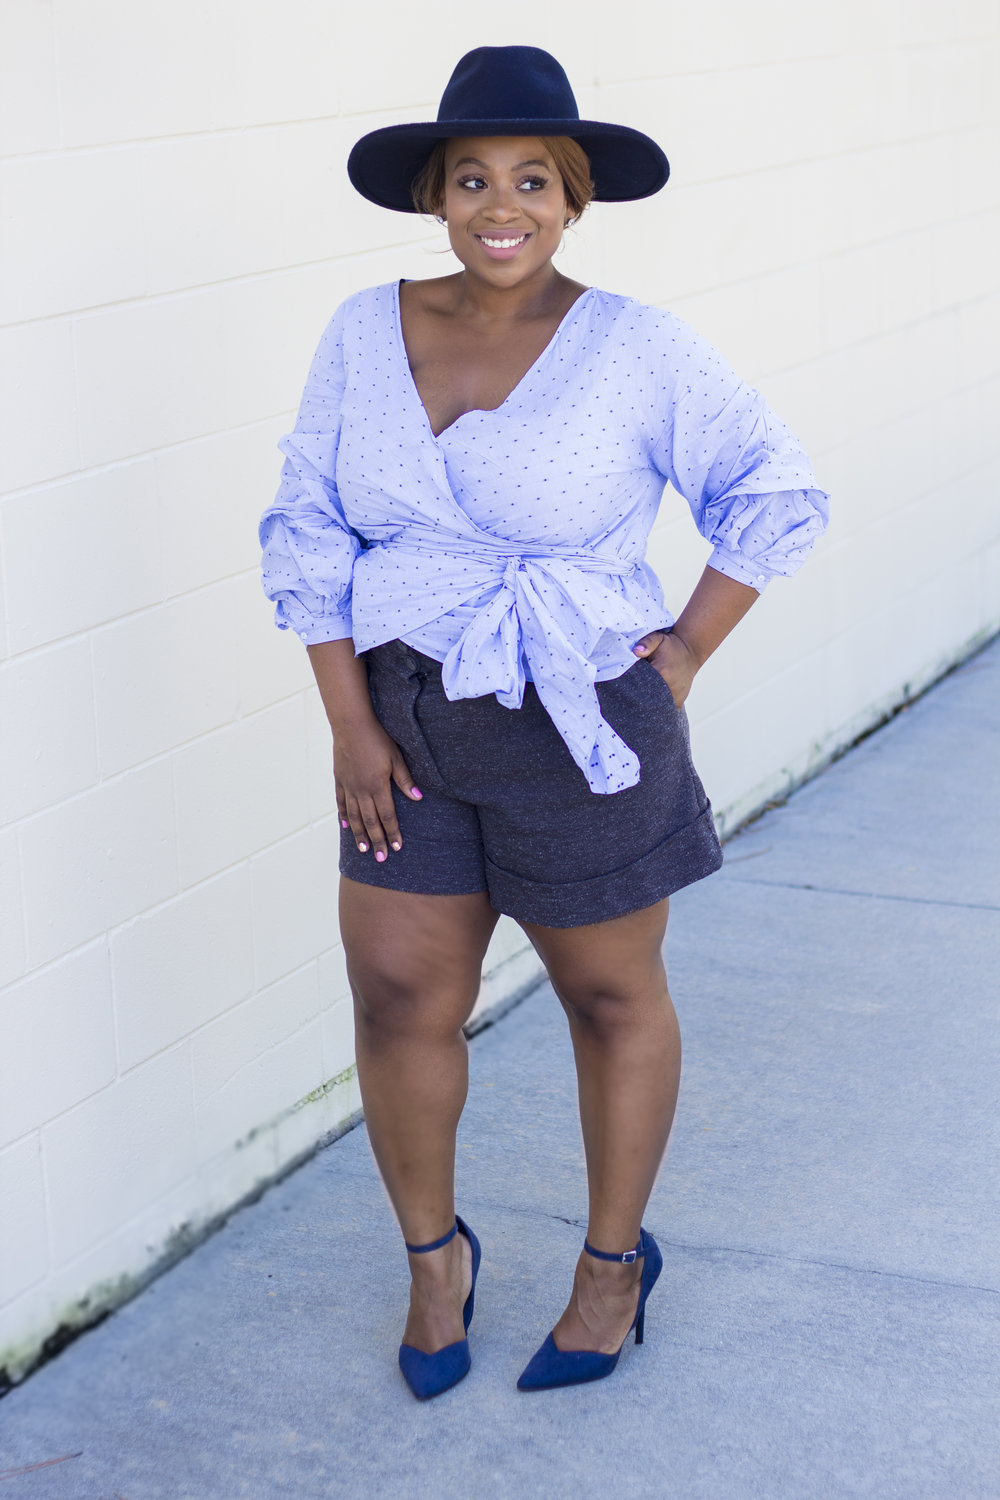 I am satisfied with how the combination turned out. The top, hat and shoes add the Fall essence to this look. Taking my shorts from summer time and marrying it with these pieces is the perfect wardrobe transition solution.